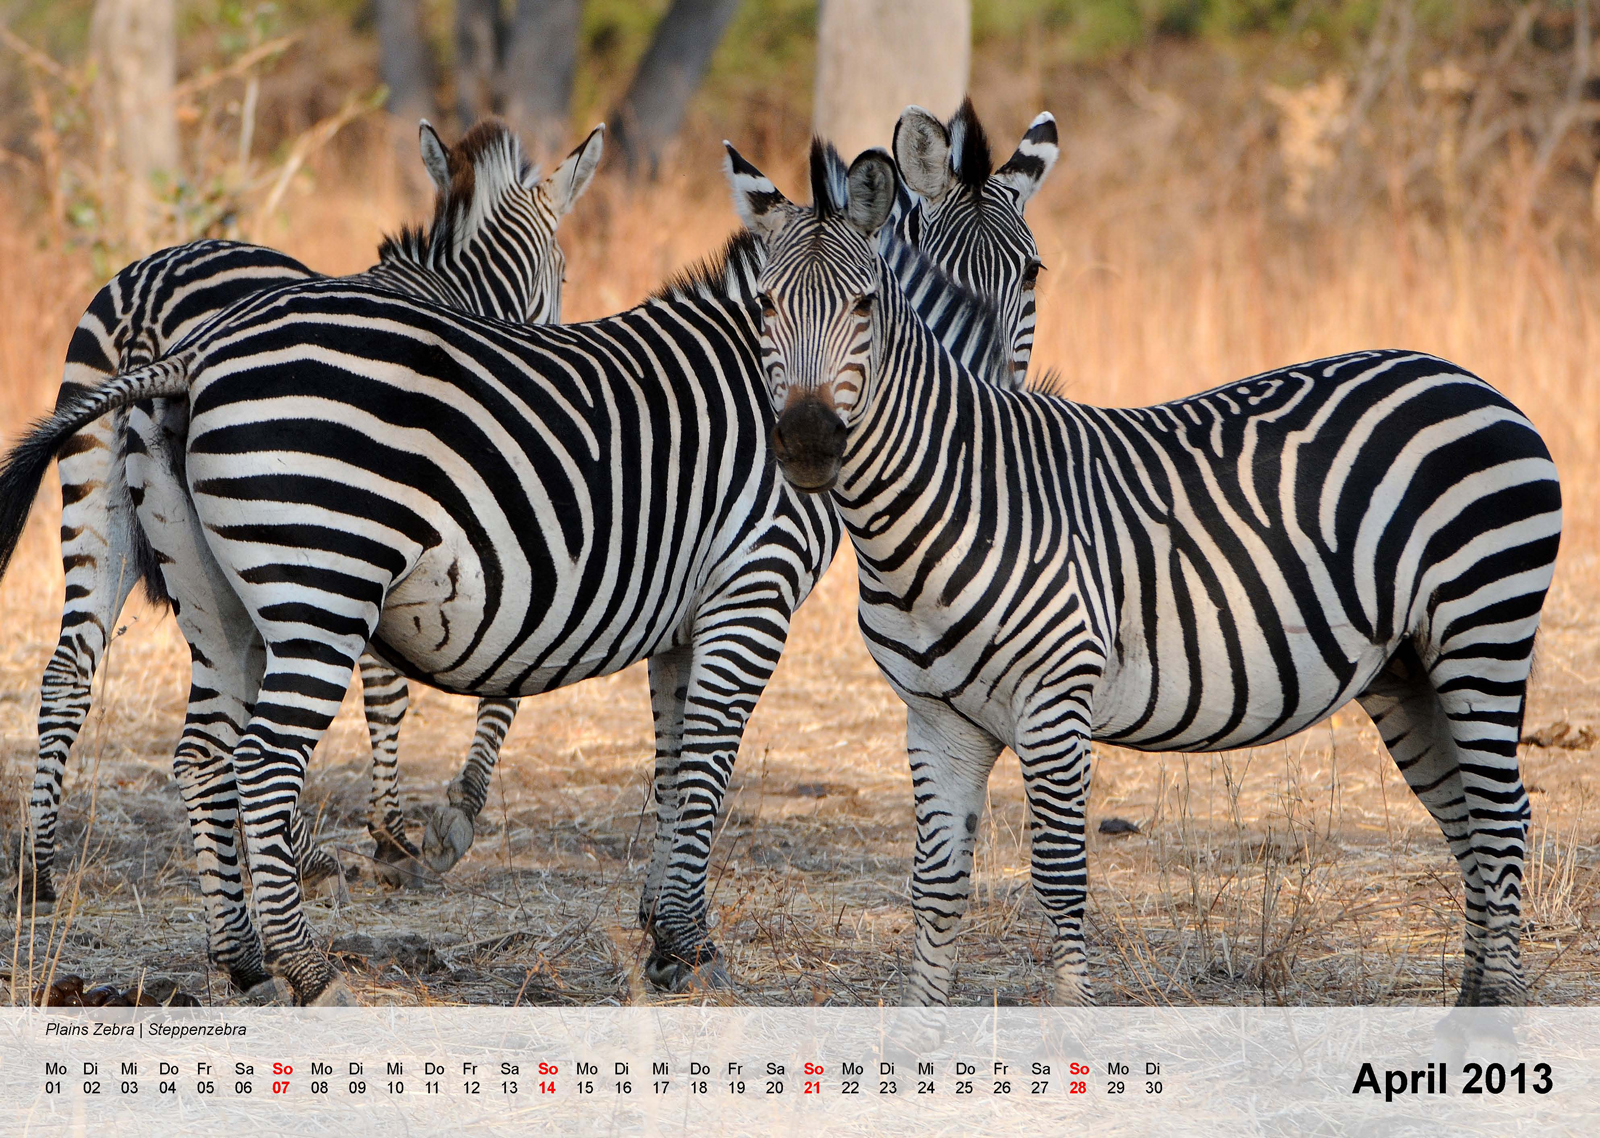 Plains Zebra | Steppenzebra - Kalender 2013 - April